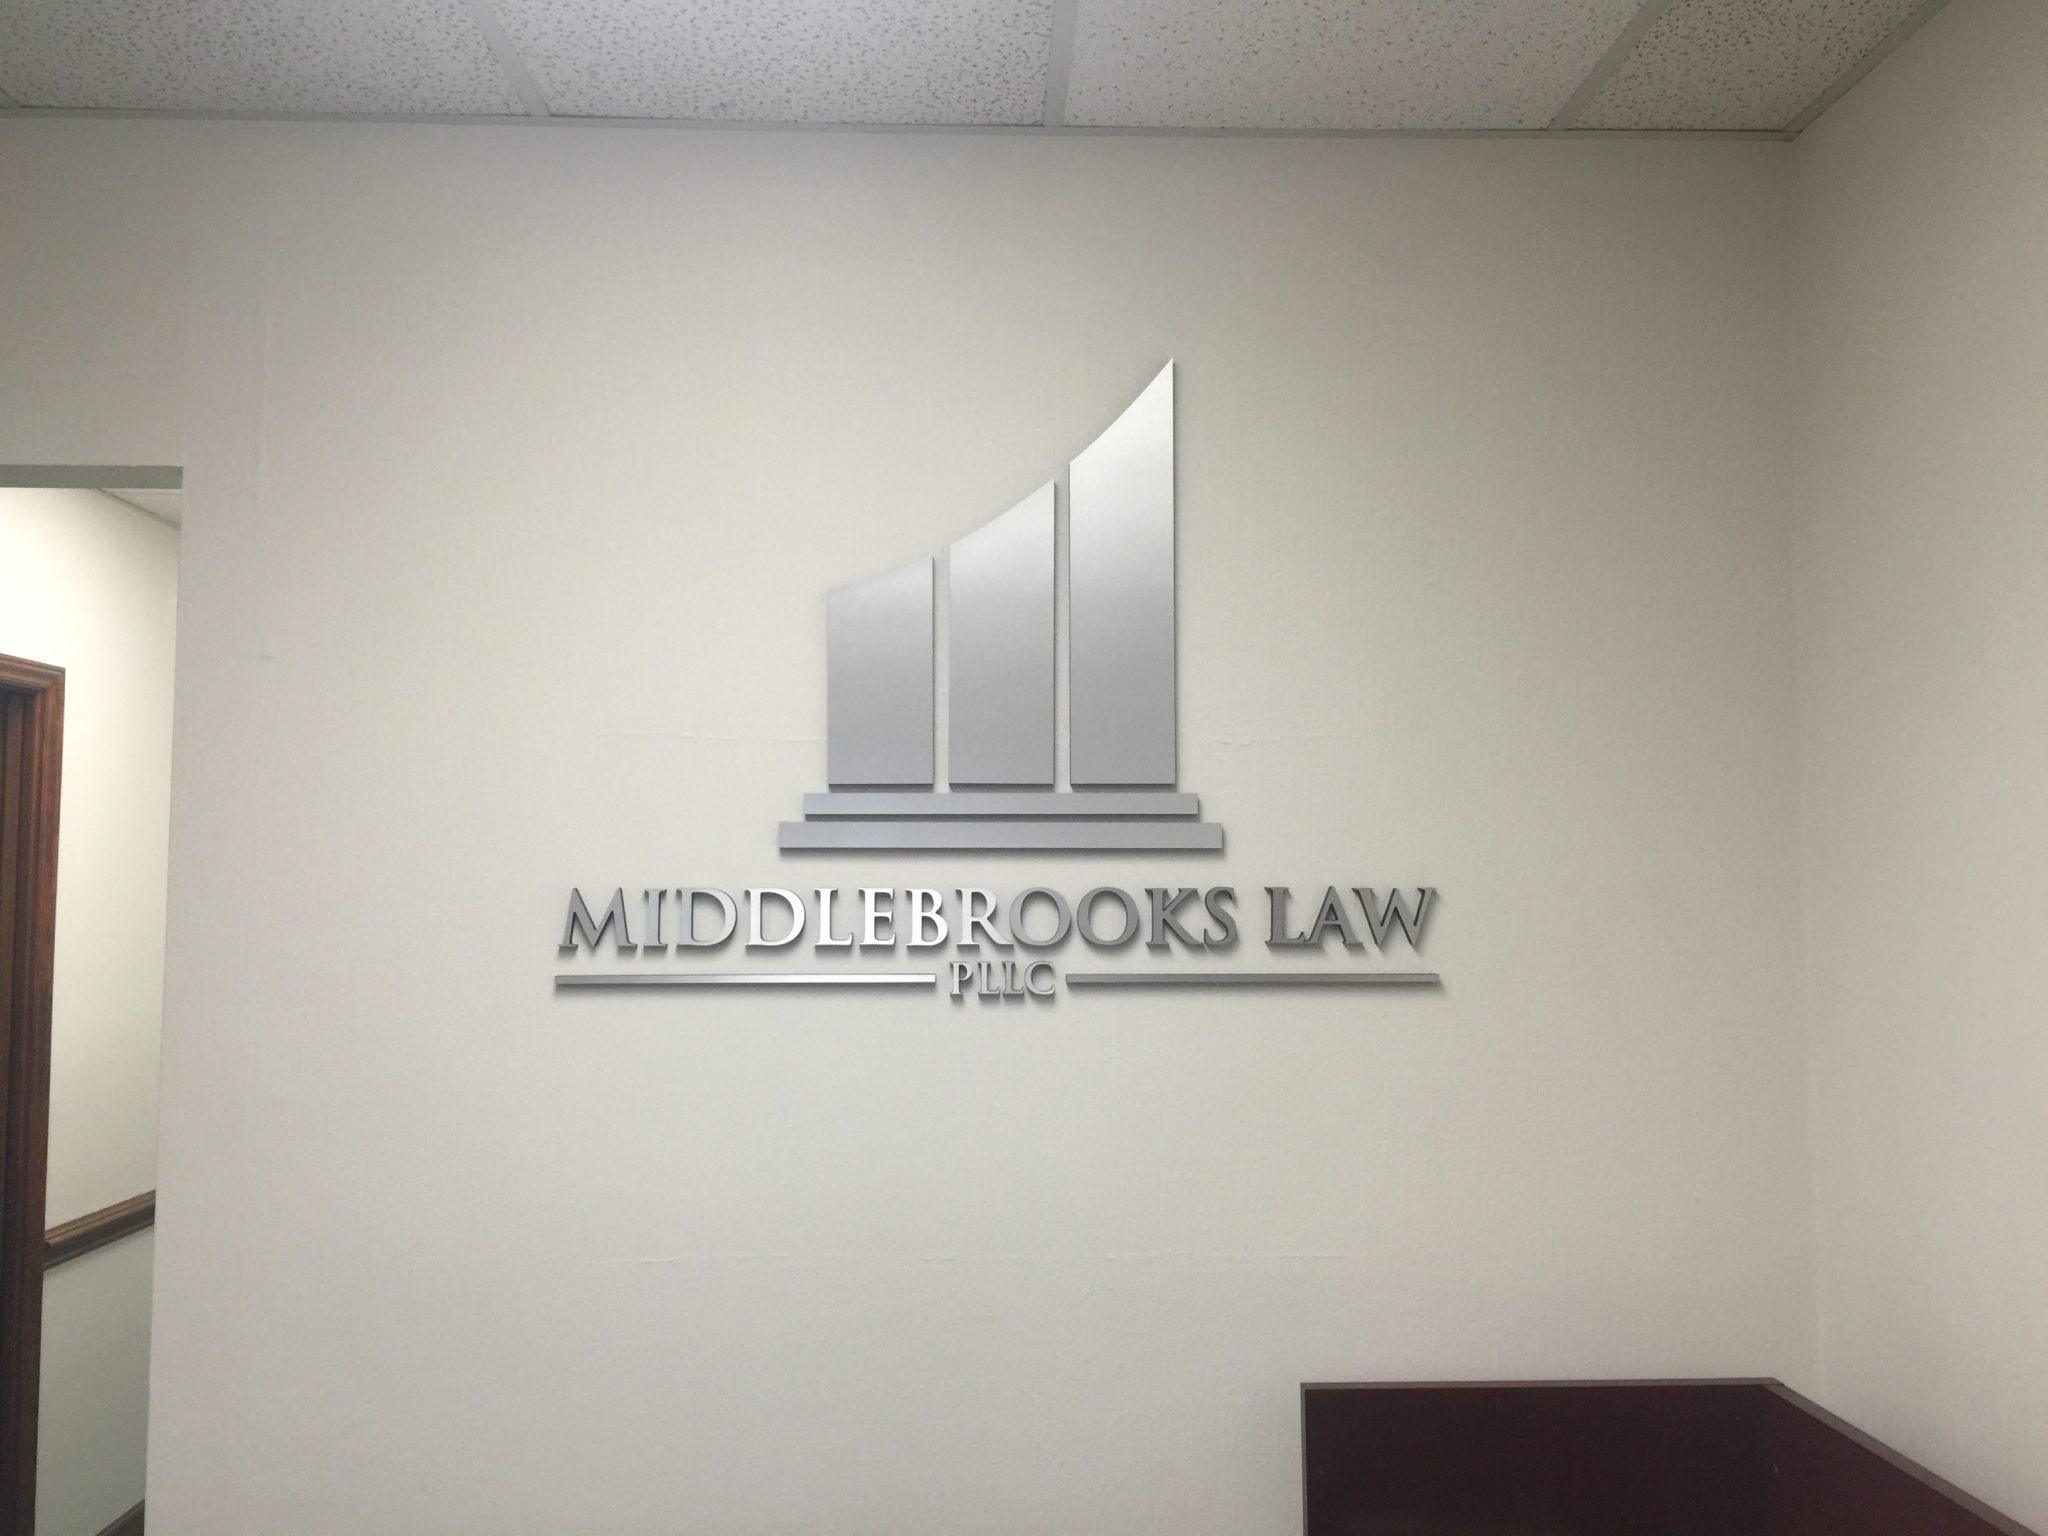 Middlebrooks law feature wall sign jc signs charlotte for Firm design